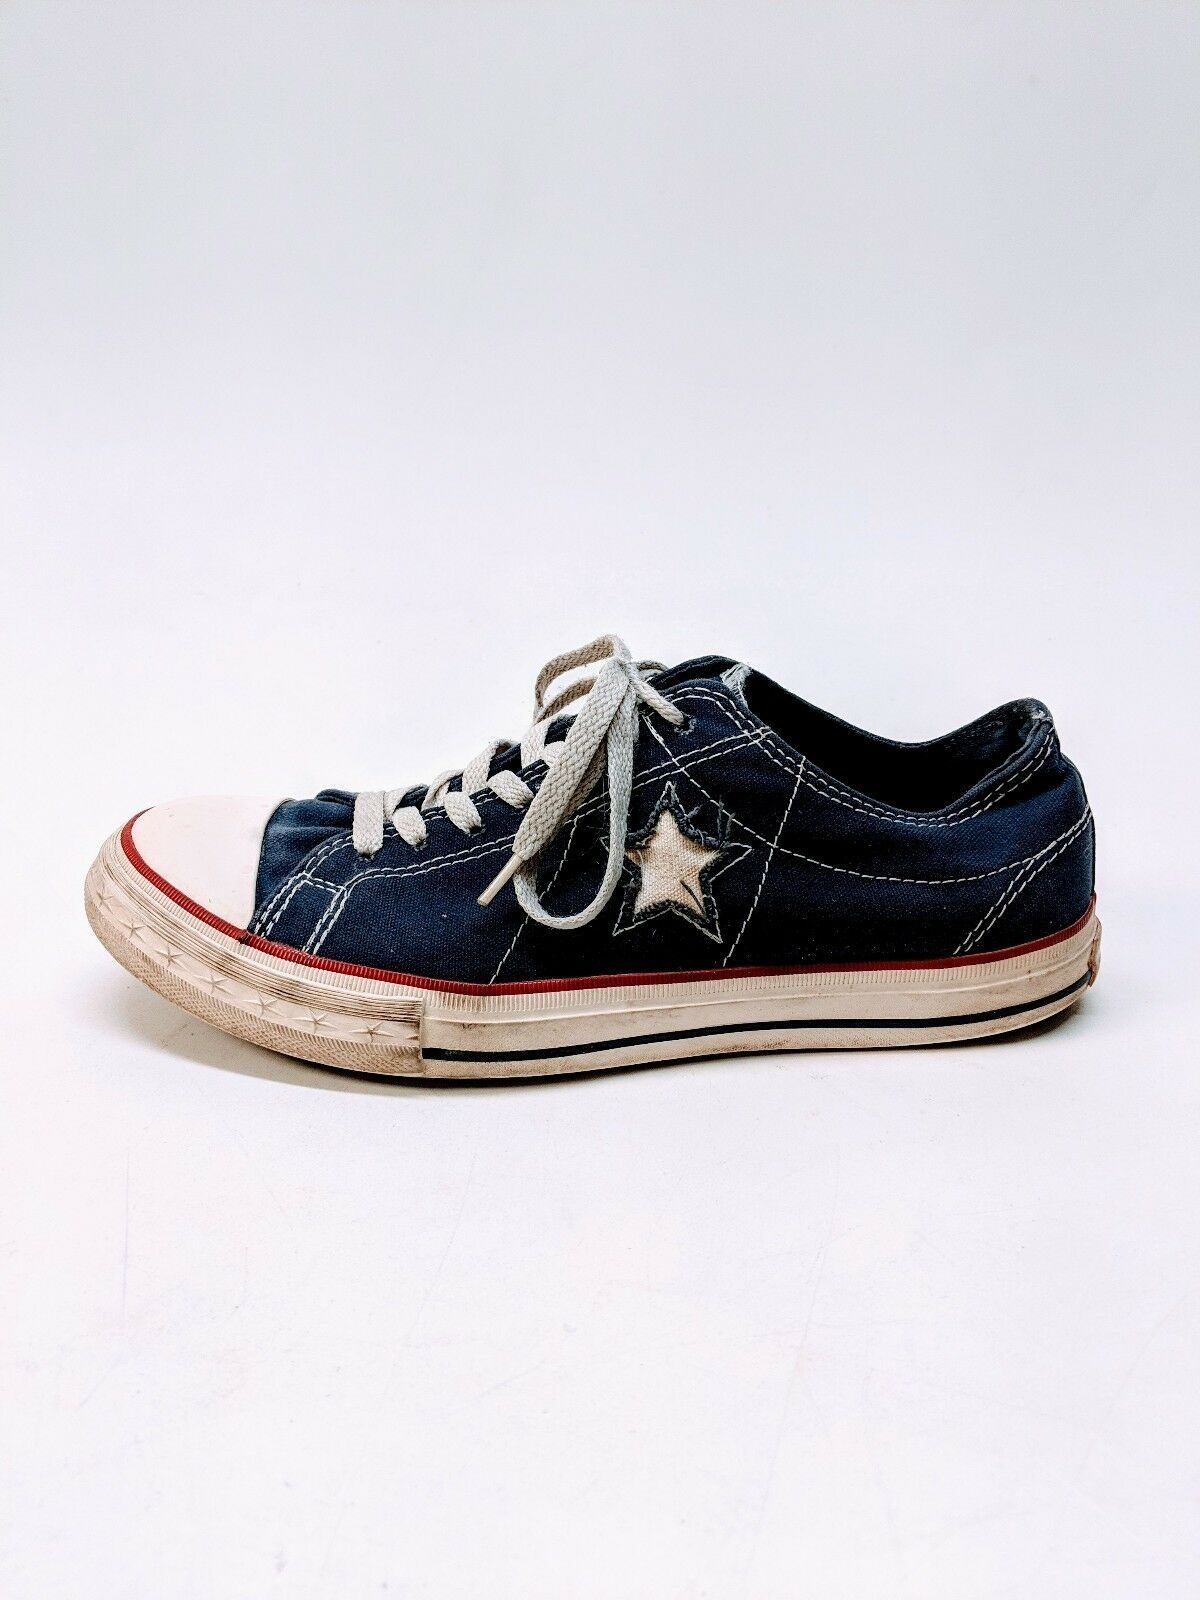 Items One Mens Similar Canvas Navy Converse And 50 Star Sneaker m8NwOvn0